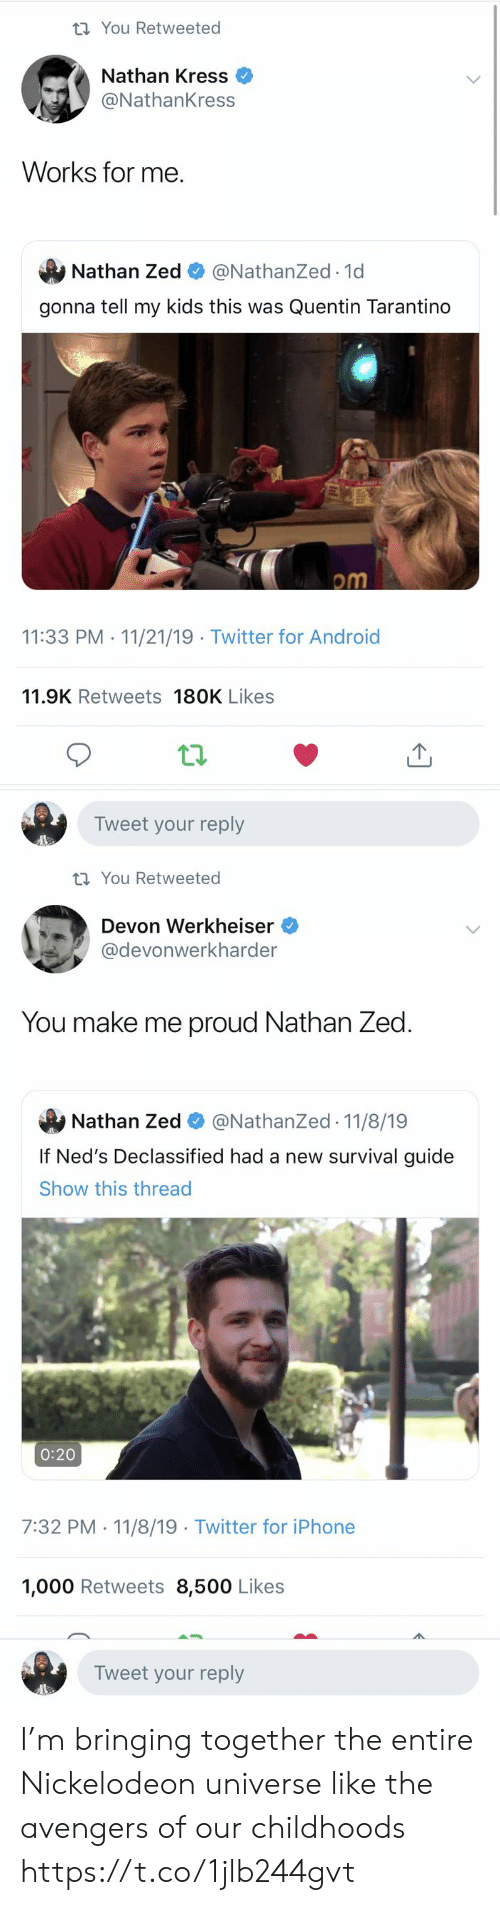 Android, Devon Werkheiser, and Funny: t You Retweeted  Nathan Kress  @NathanKress  Works for me  Nathan Zed  @NathanZed.1d  gonna tell my kids this was Quentin Tarantino  om  11:33 PM 11/21/19 Twitter for Android  .  11.9K Retweets 180K Likes  Tweet your reply   t You Retweeted  Devon Werkheiser  @devonwerkharder  You make me proud Nathan Zed  @NathanZed 11/8/19  Nathan Zed  If Ned's Declassified had a new survival guide  Show this thread  0:20  7:32 PM 11/8/19 Twitter for iPhone  1,000 Retweets 8,500 Likes  Tweet your reply I'm bringing together the entire Nickelodeon universe like the avengers of our childhoods https://t.co/1jlb244gvt